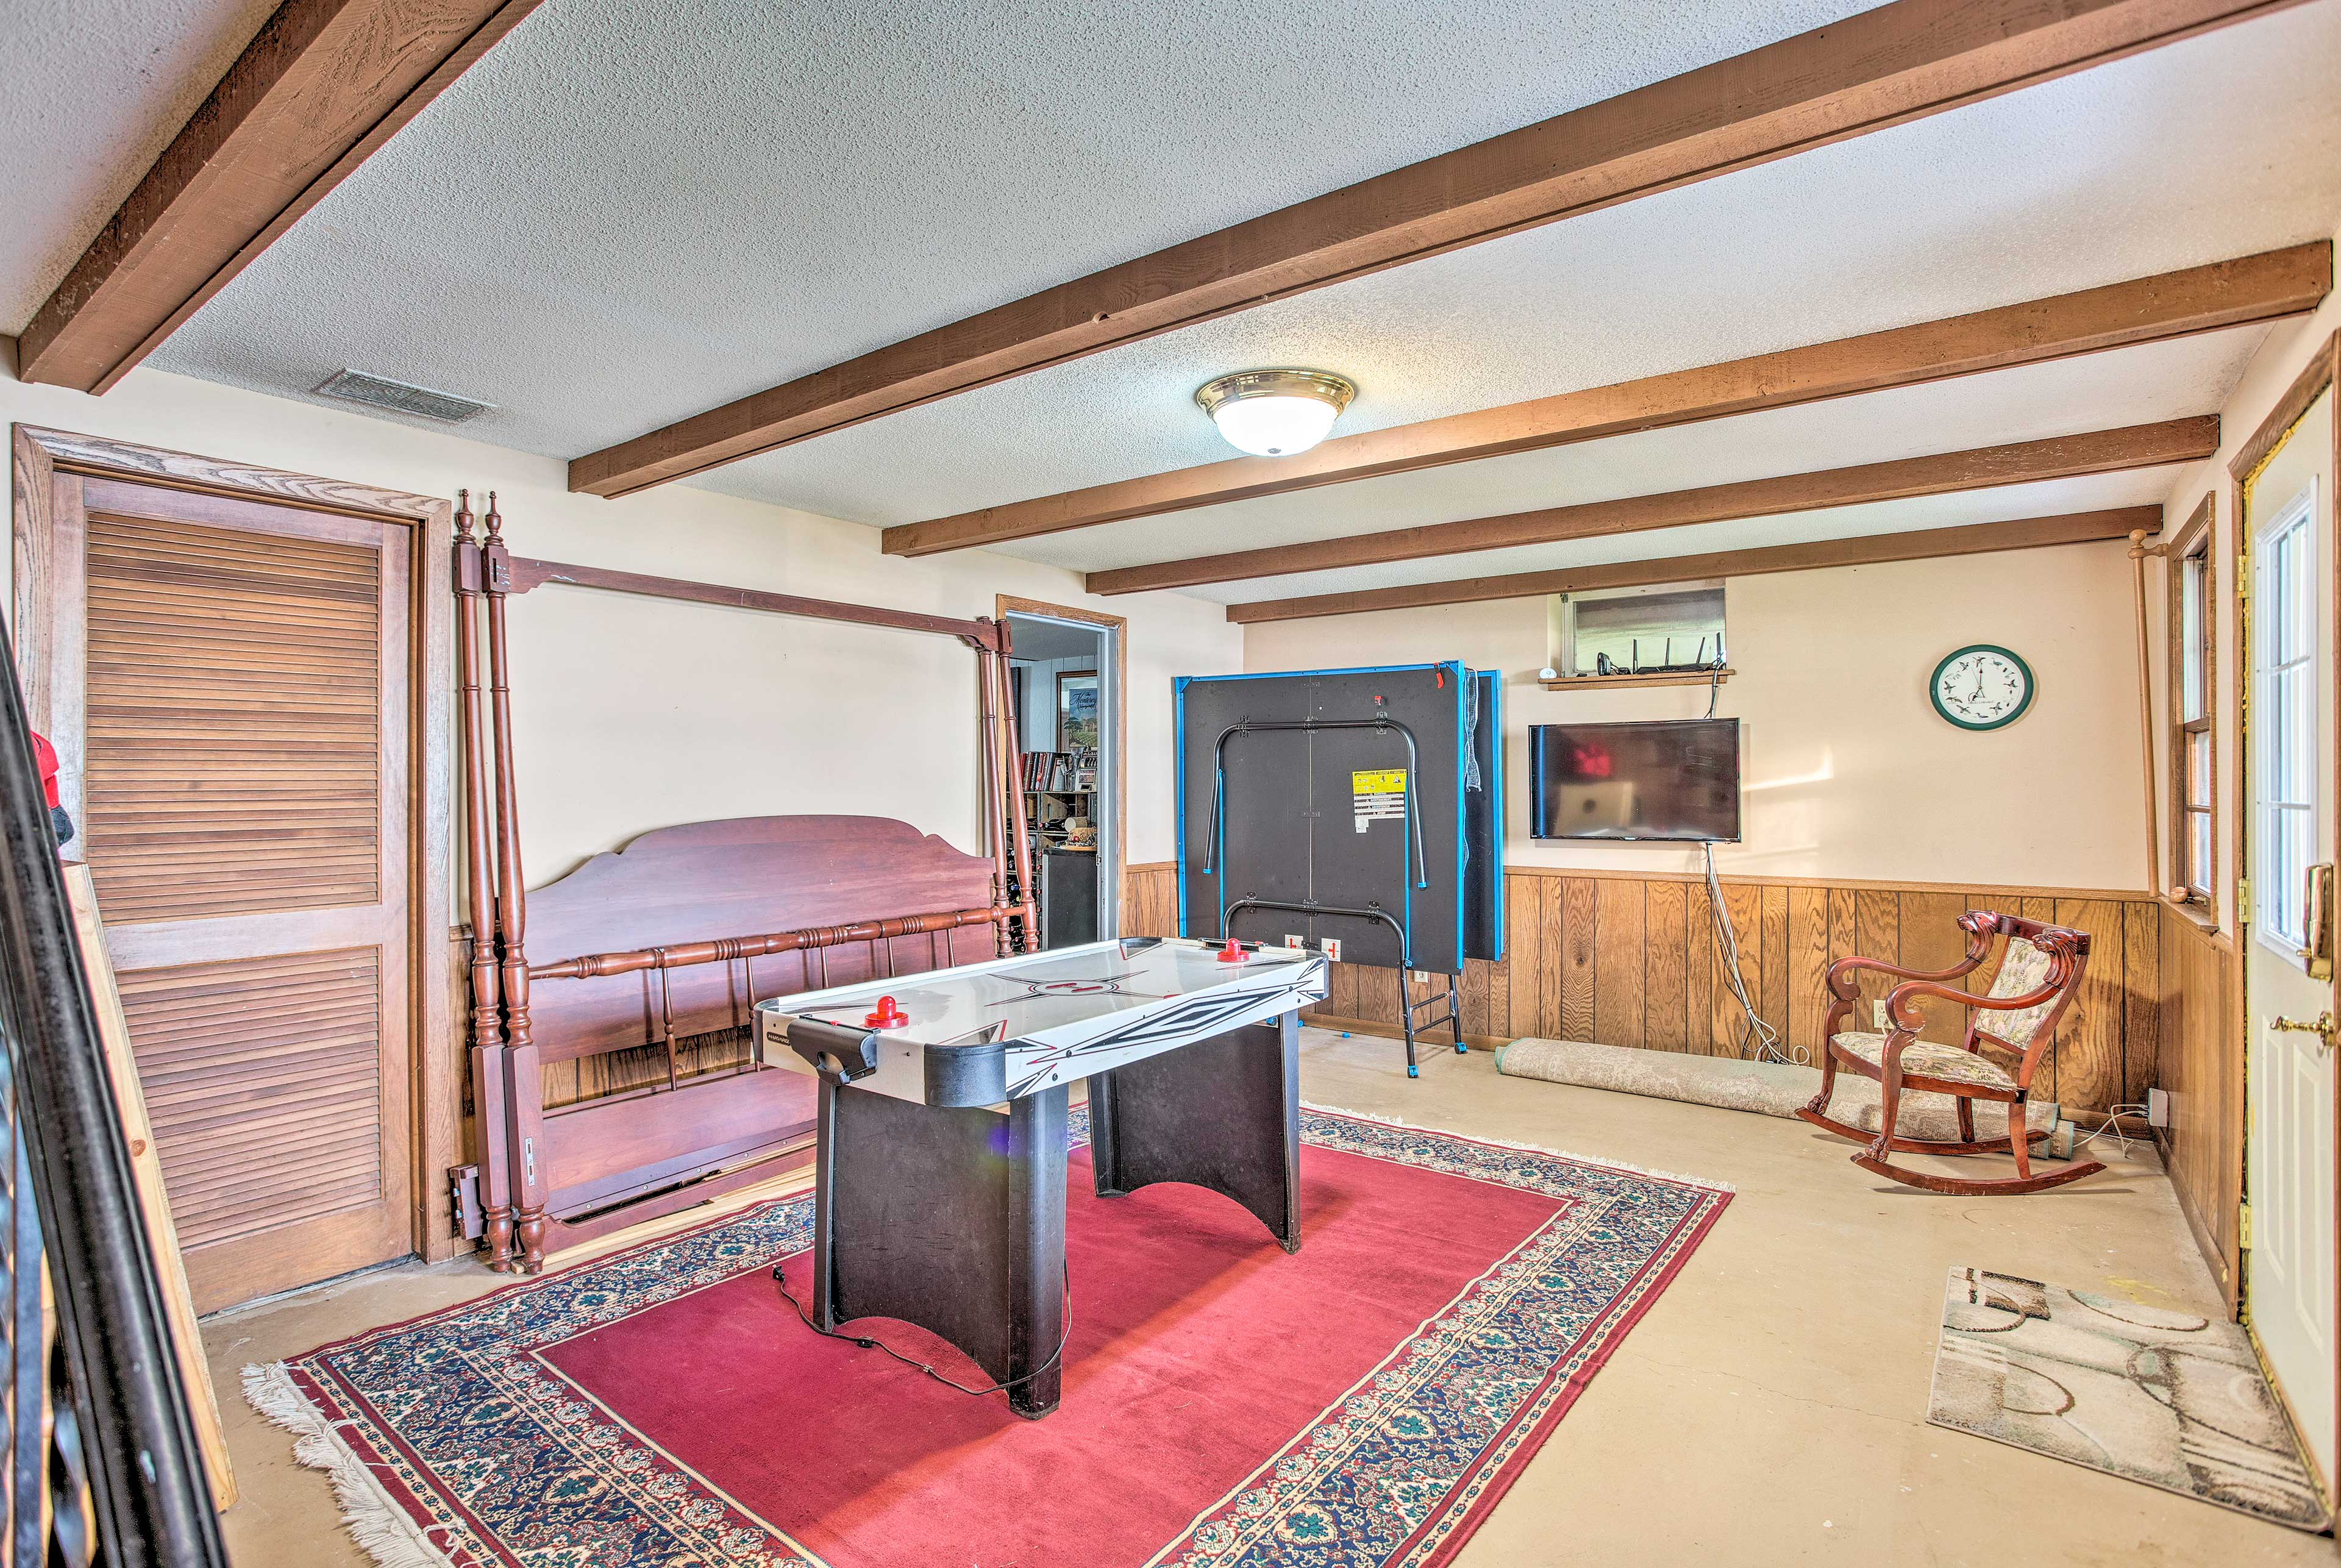 Head downstairs to reach the third bedroom and game room with air hockey.